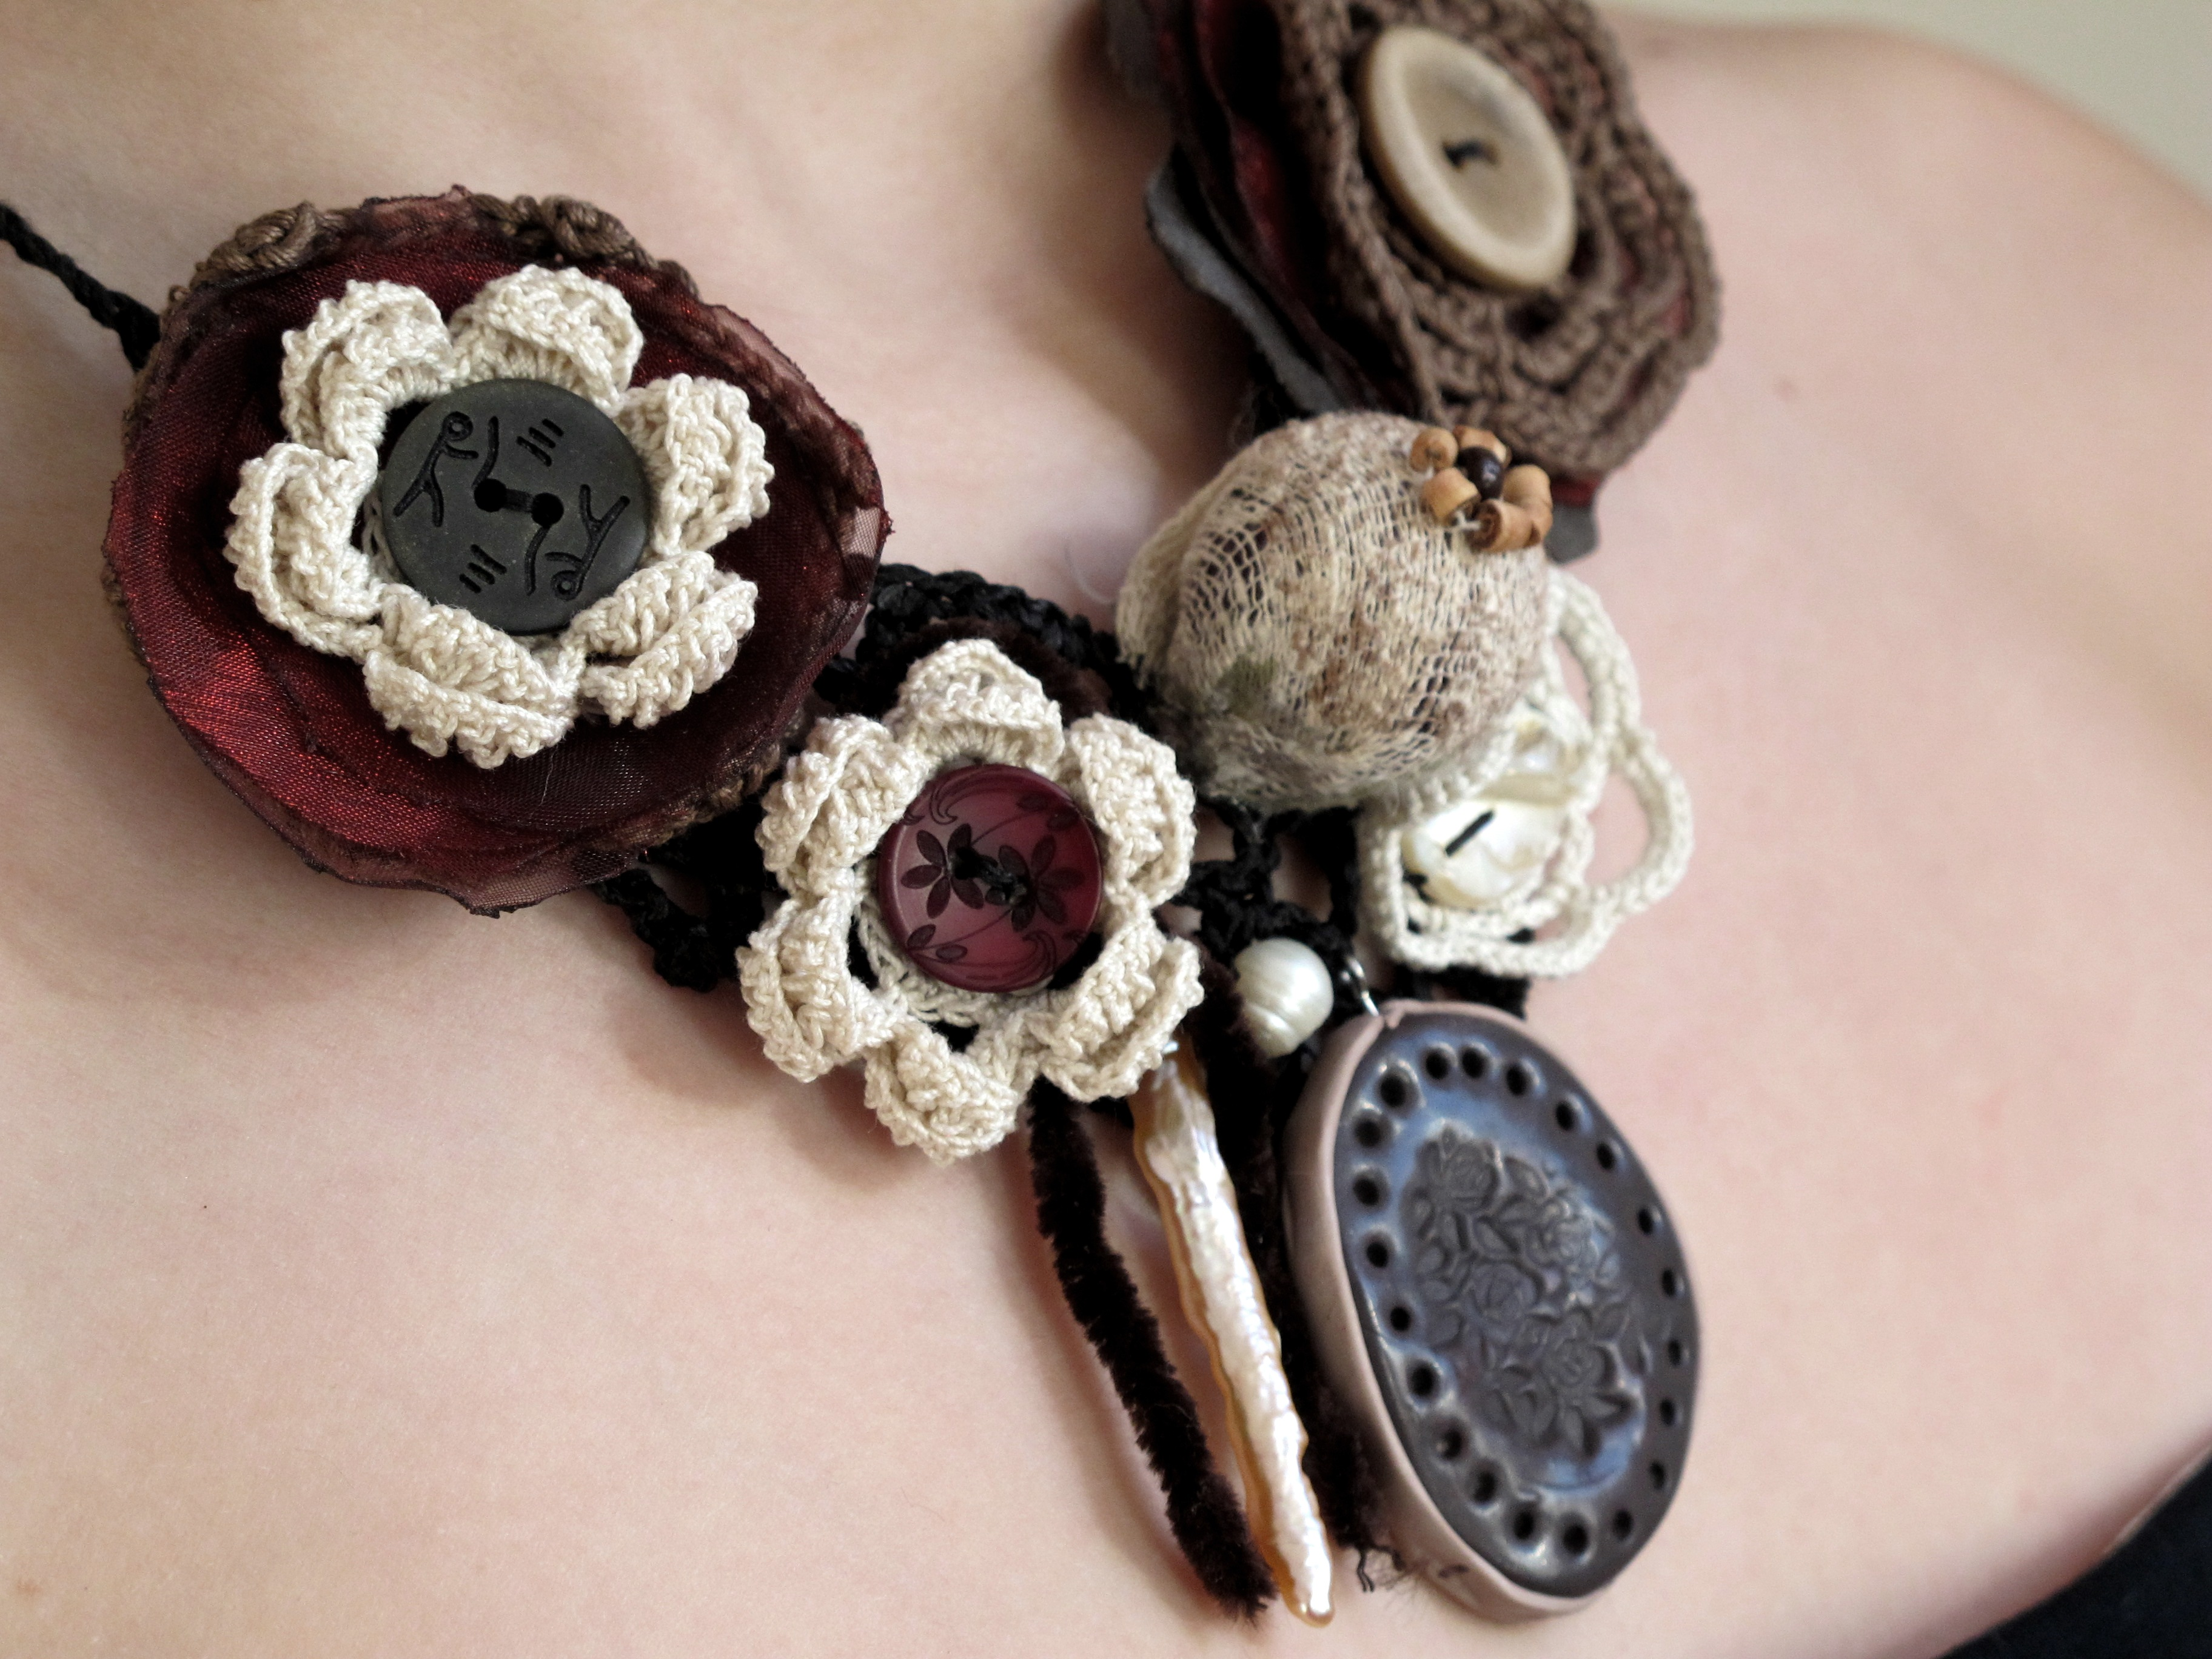 Crochet necklace in Necklaces & Pendants at Bizrate - Shop and